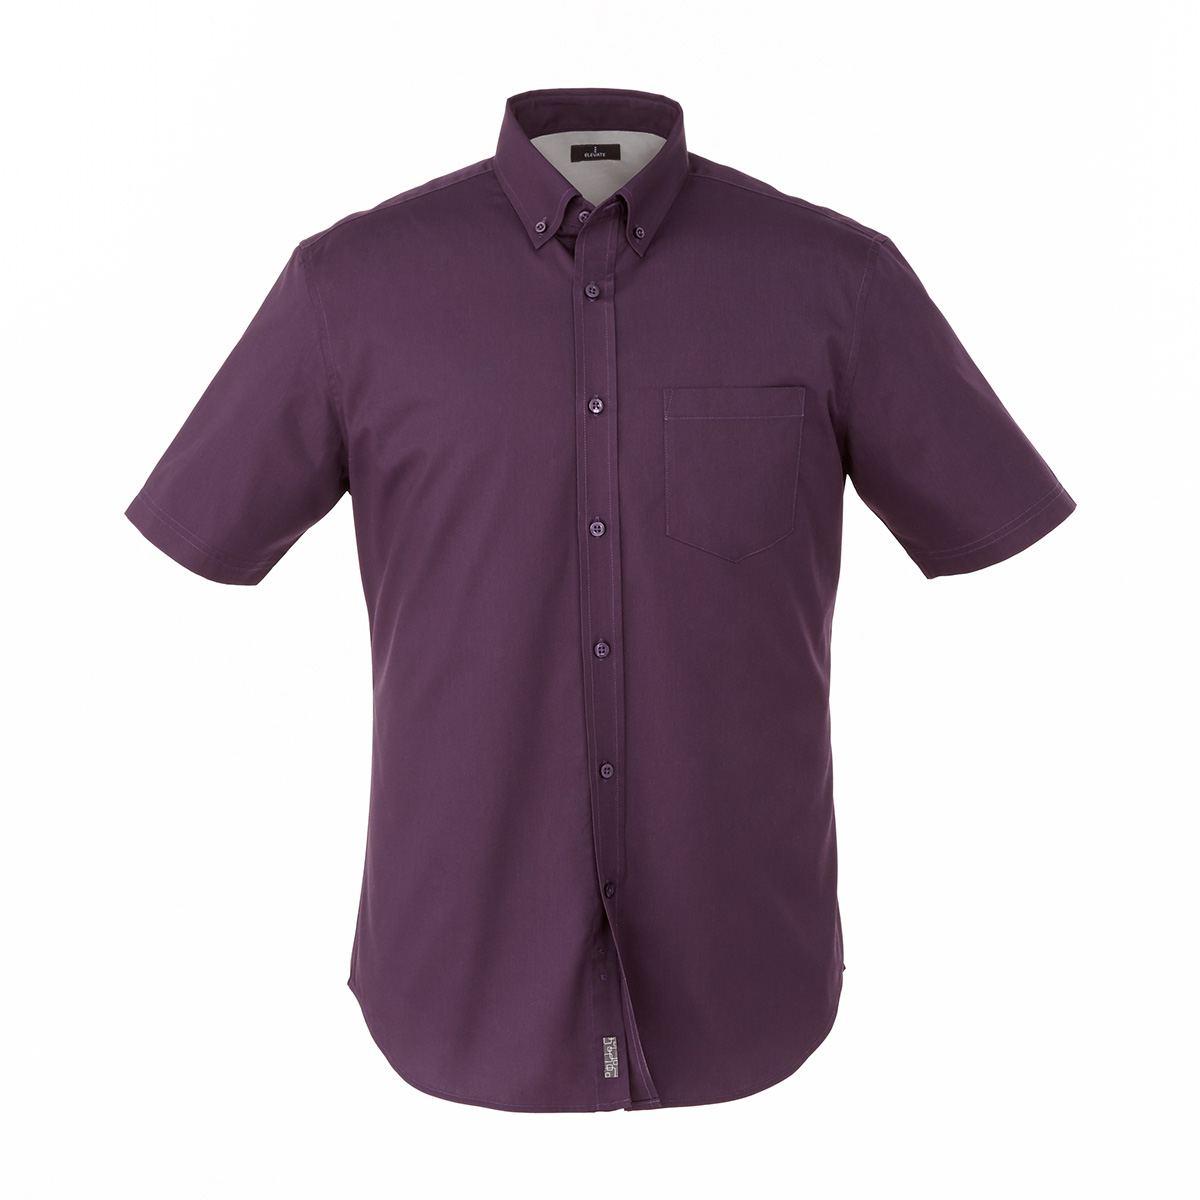 Stirling Short Sleeve Men's Shirt, #17745 - Embroidered